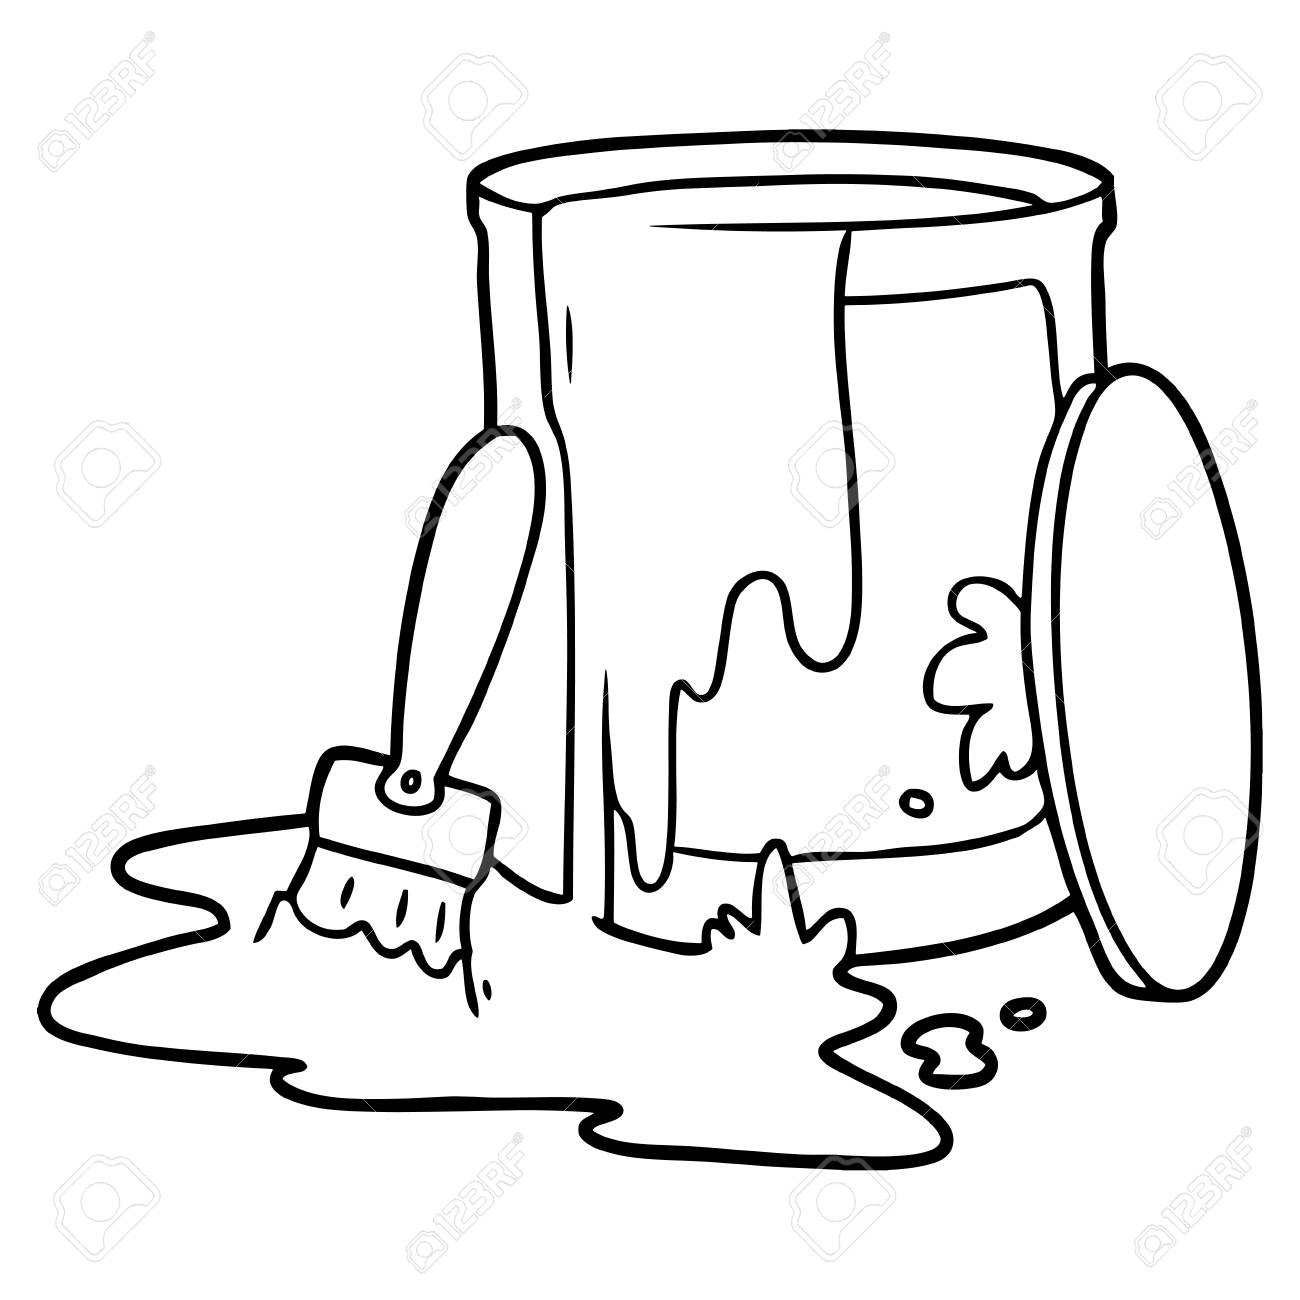 Cartoon Paint Bucket Illustration On White Background Royalty Free Cliparts Vectors And Stock Illustration Image 96669554